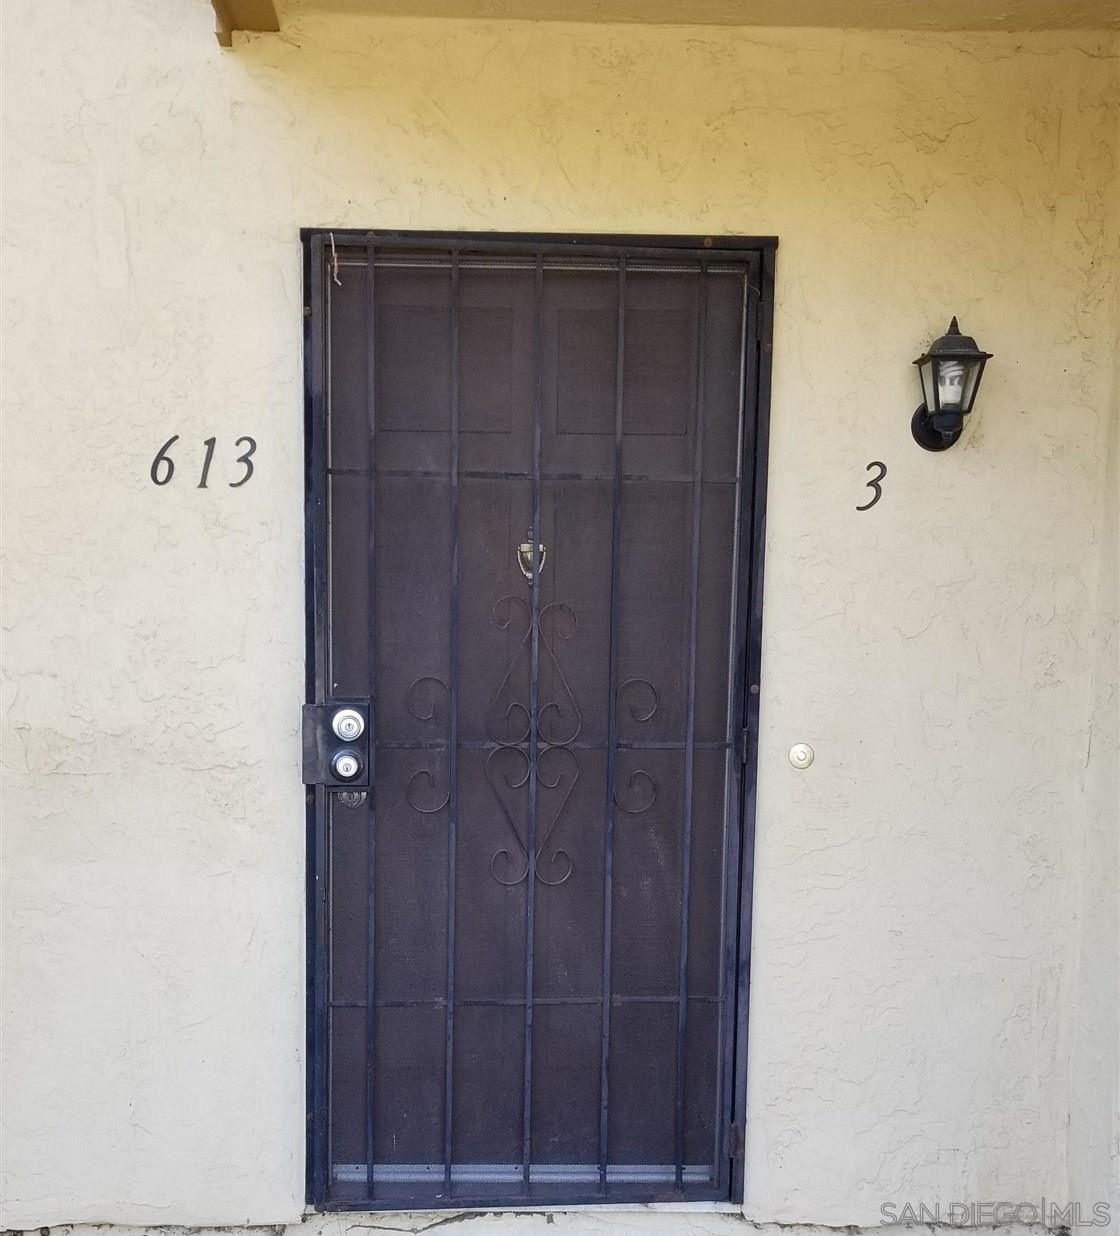 Photo of 613 R ave, National city, CA 91950 (MLS # 210028136)